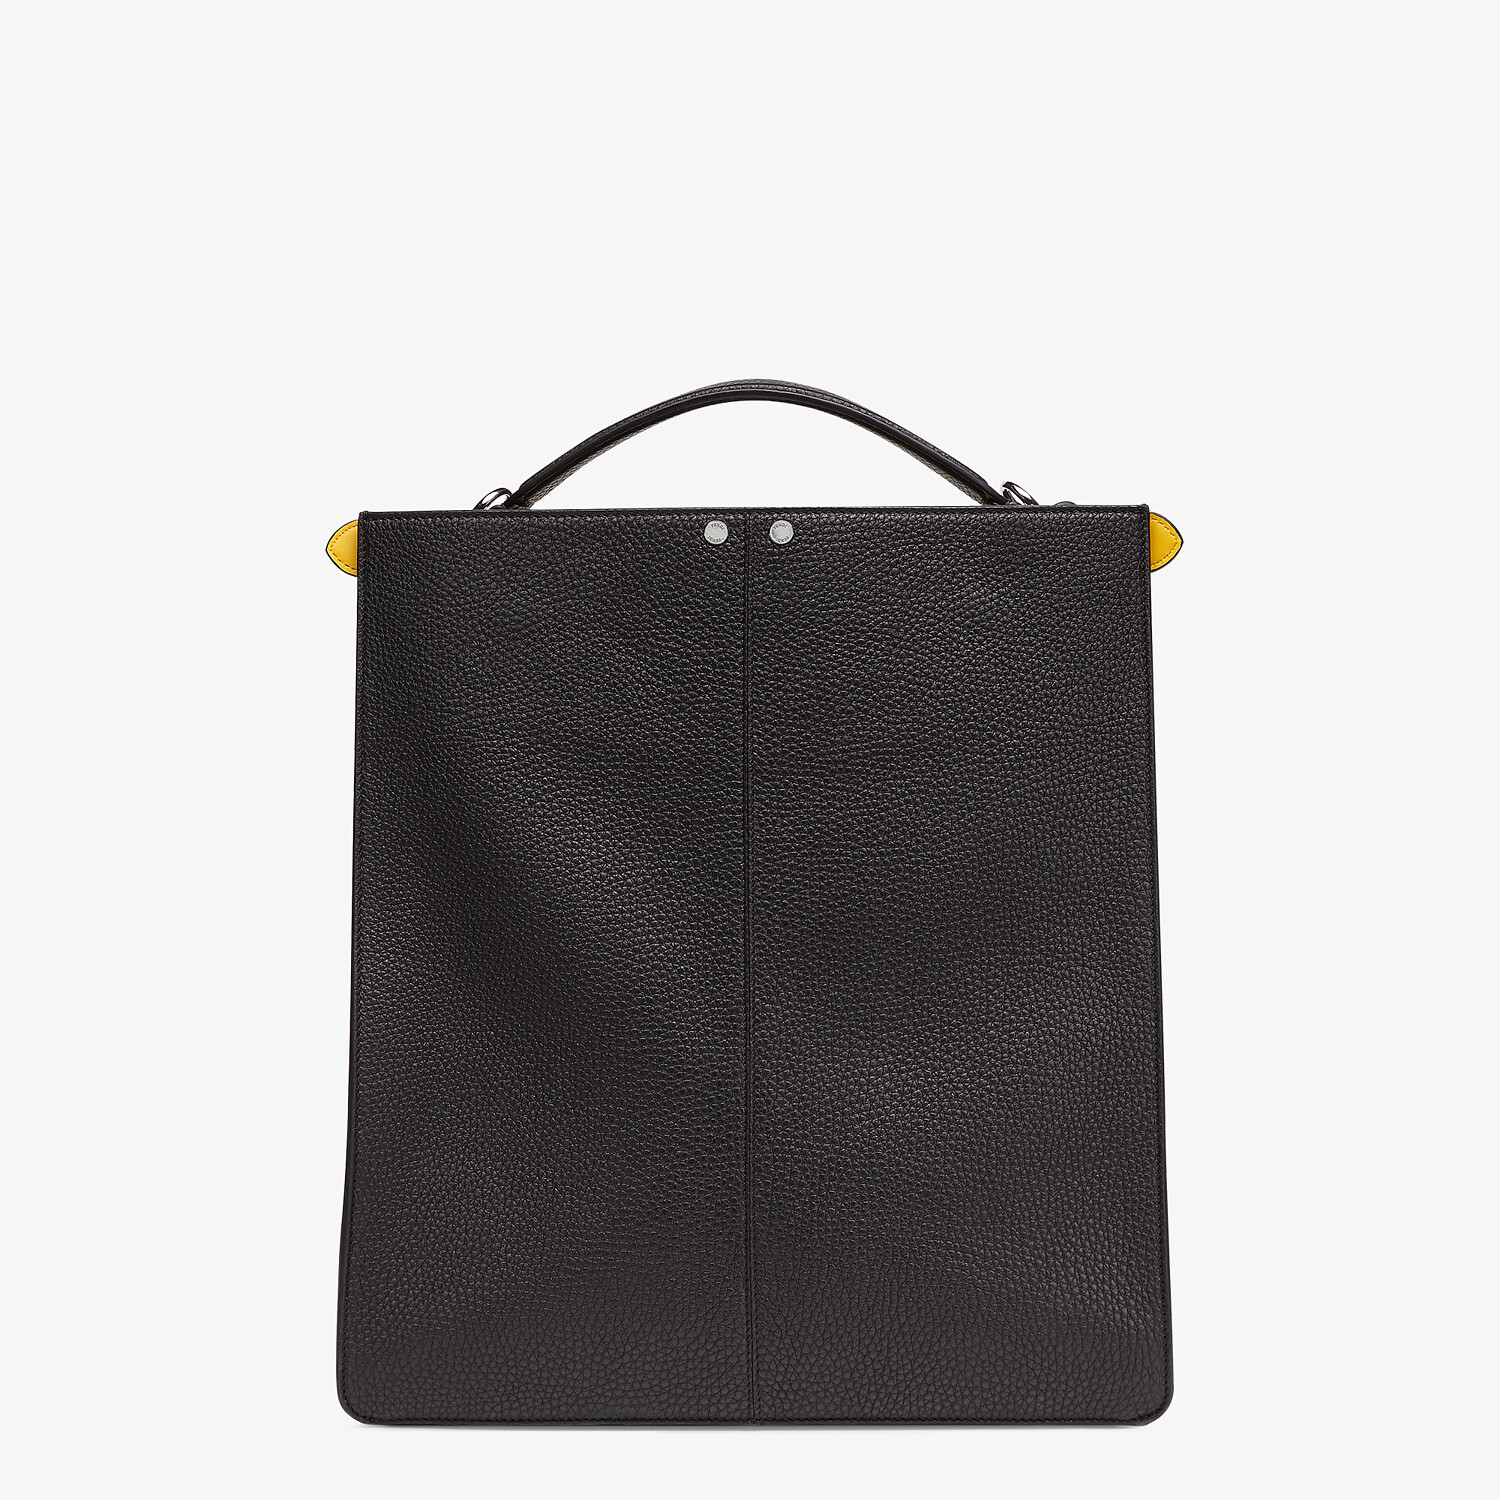 FENDI PEEKABOO ISEEU TOTE - Black leather bag - view 5 detail